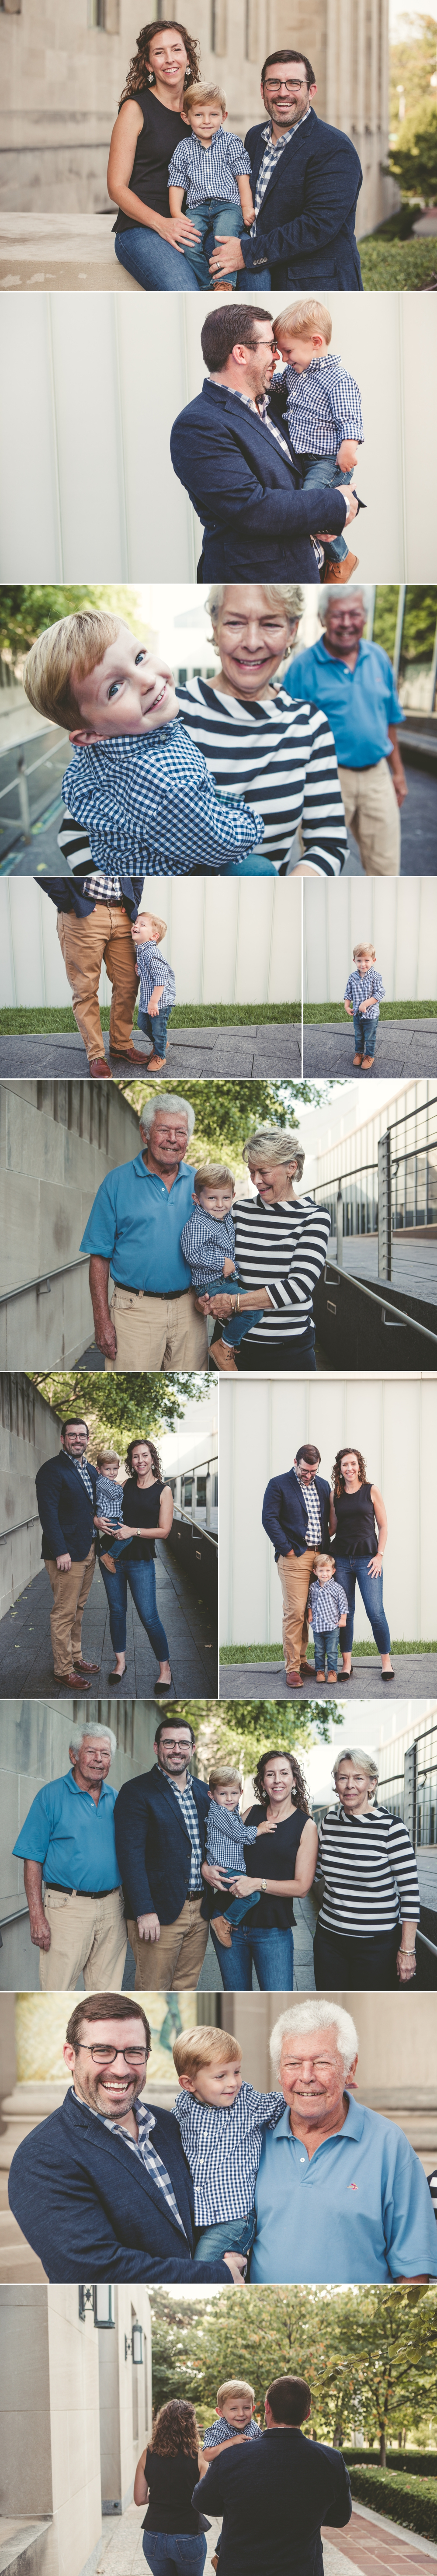 jason_domingues_photography_best_kansas_city_photographer_kc_family_portraits.JPG